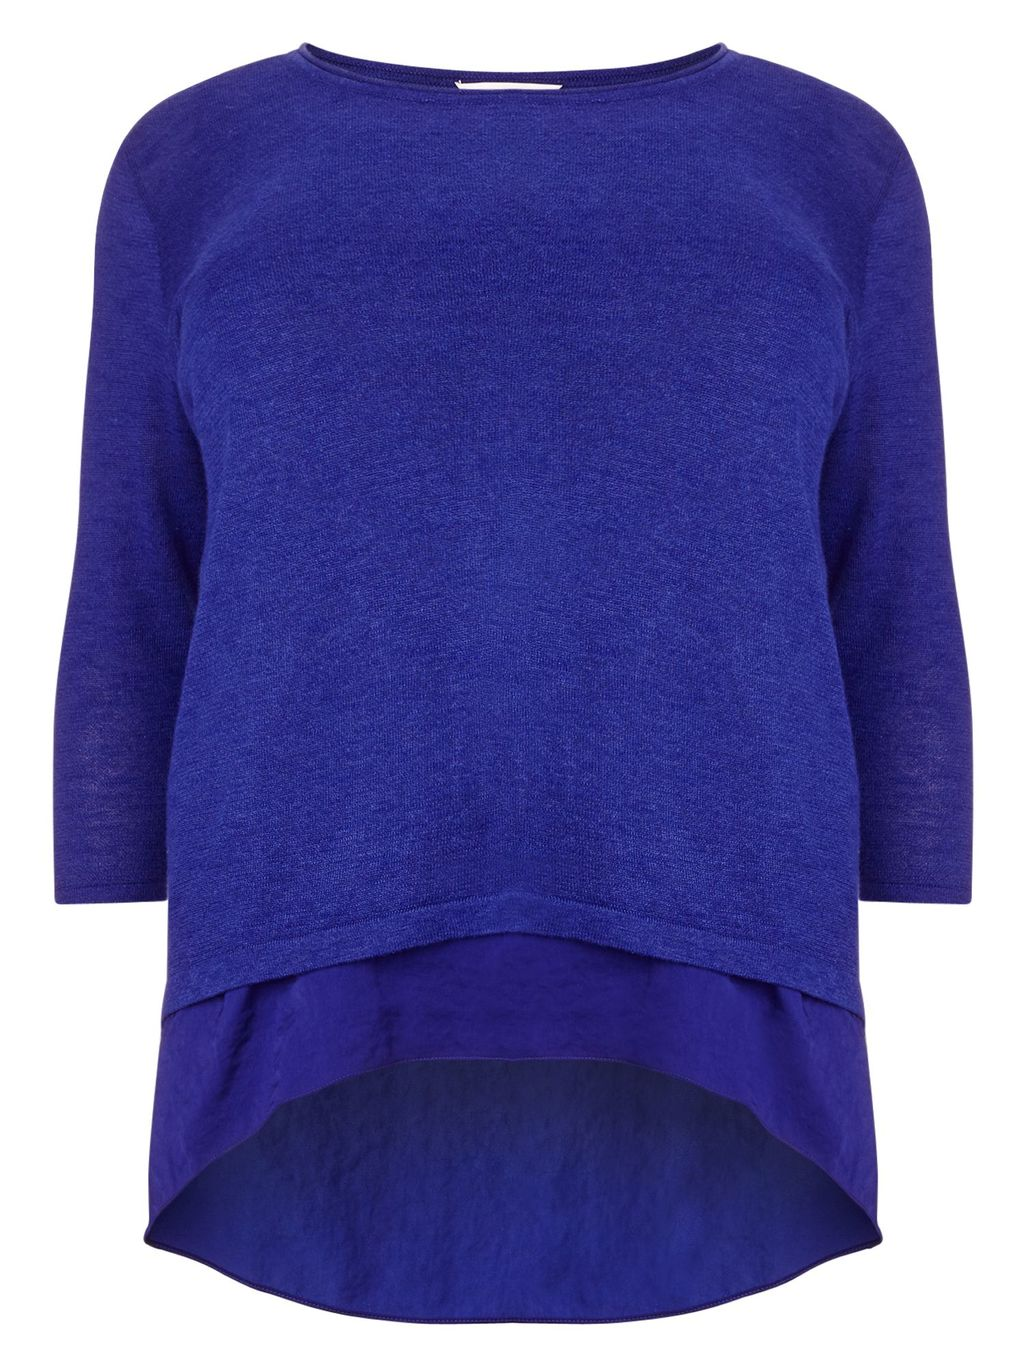 Caroline Jumper, Cobalt - pattern: plain; style: standard; predominant colour: royal blue; occasions: casual, creative work; length: standard; fibres: cotton - mix; fit: standard fit; neckline: crew; sleeve length: 3/4 length; sleeve style: standard; texture group: knits/crochet; pattern type: knitted - fine stitch; season: s/s 2016; wardrobe: highlight